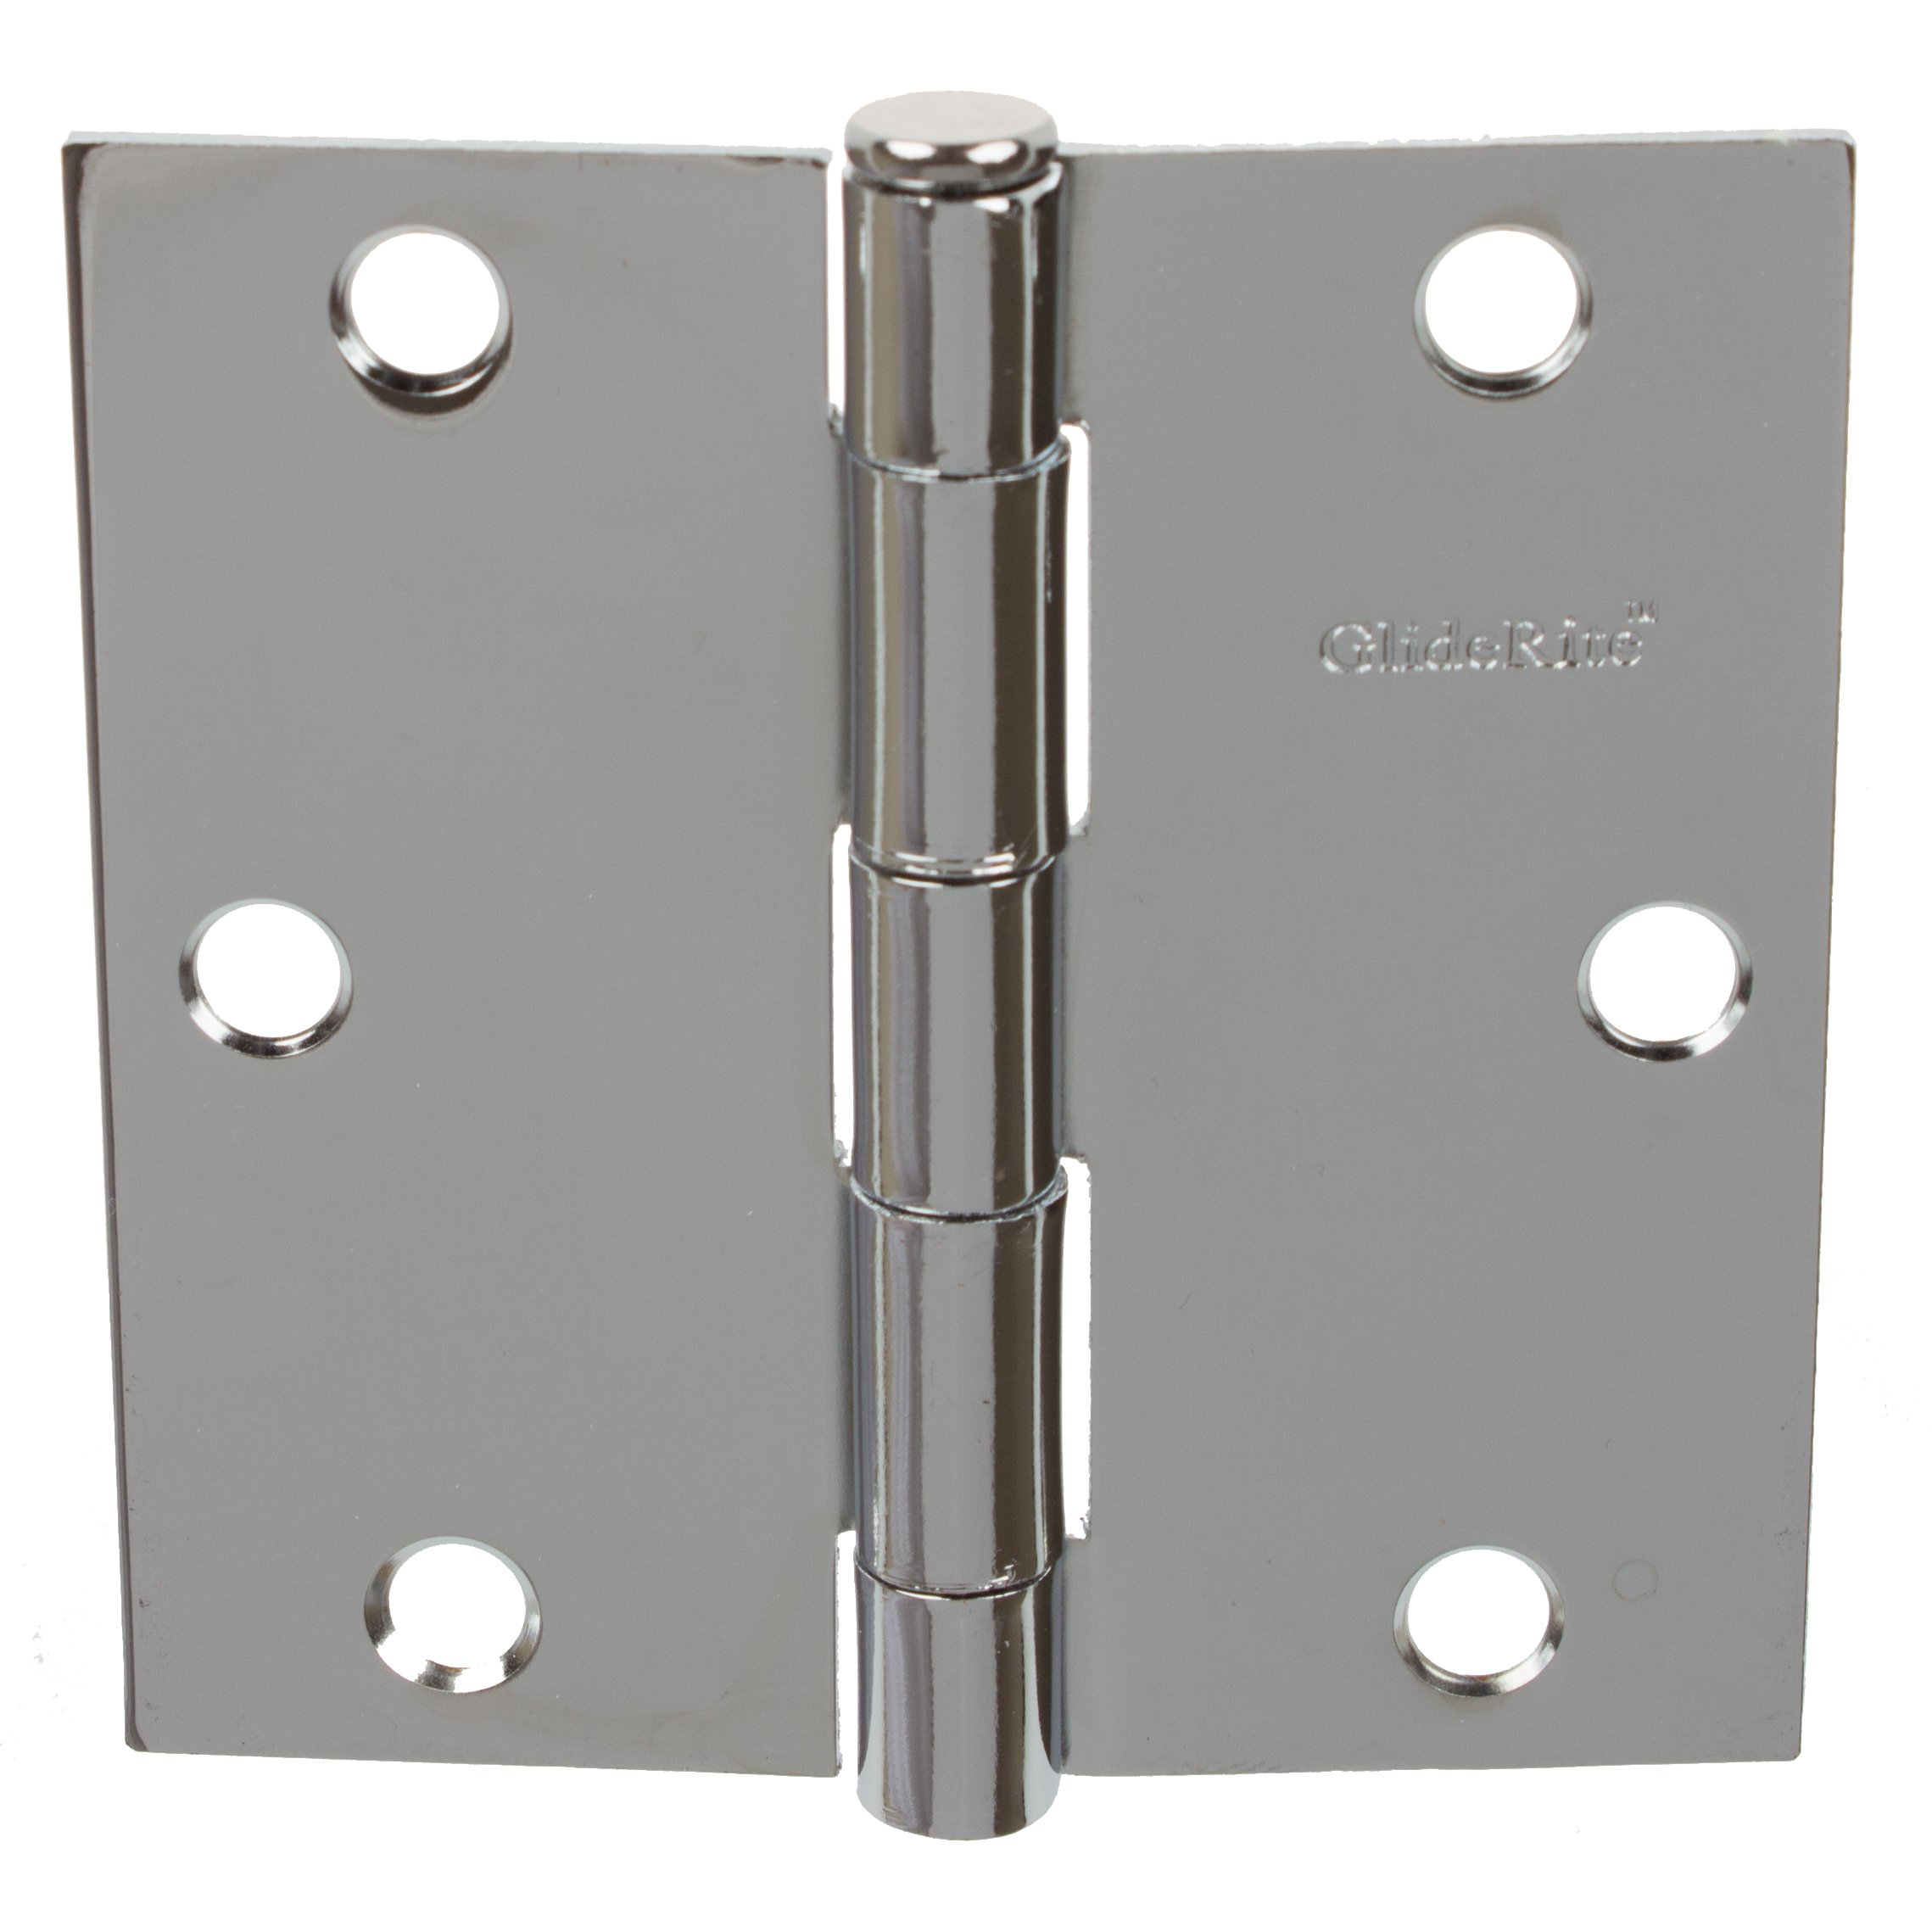 GlideRite Hardware 3500-PC-100 3.5 inch steel Door Hinges Square Corners Polished Chrome Finish 100 Pack